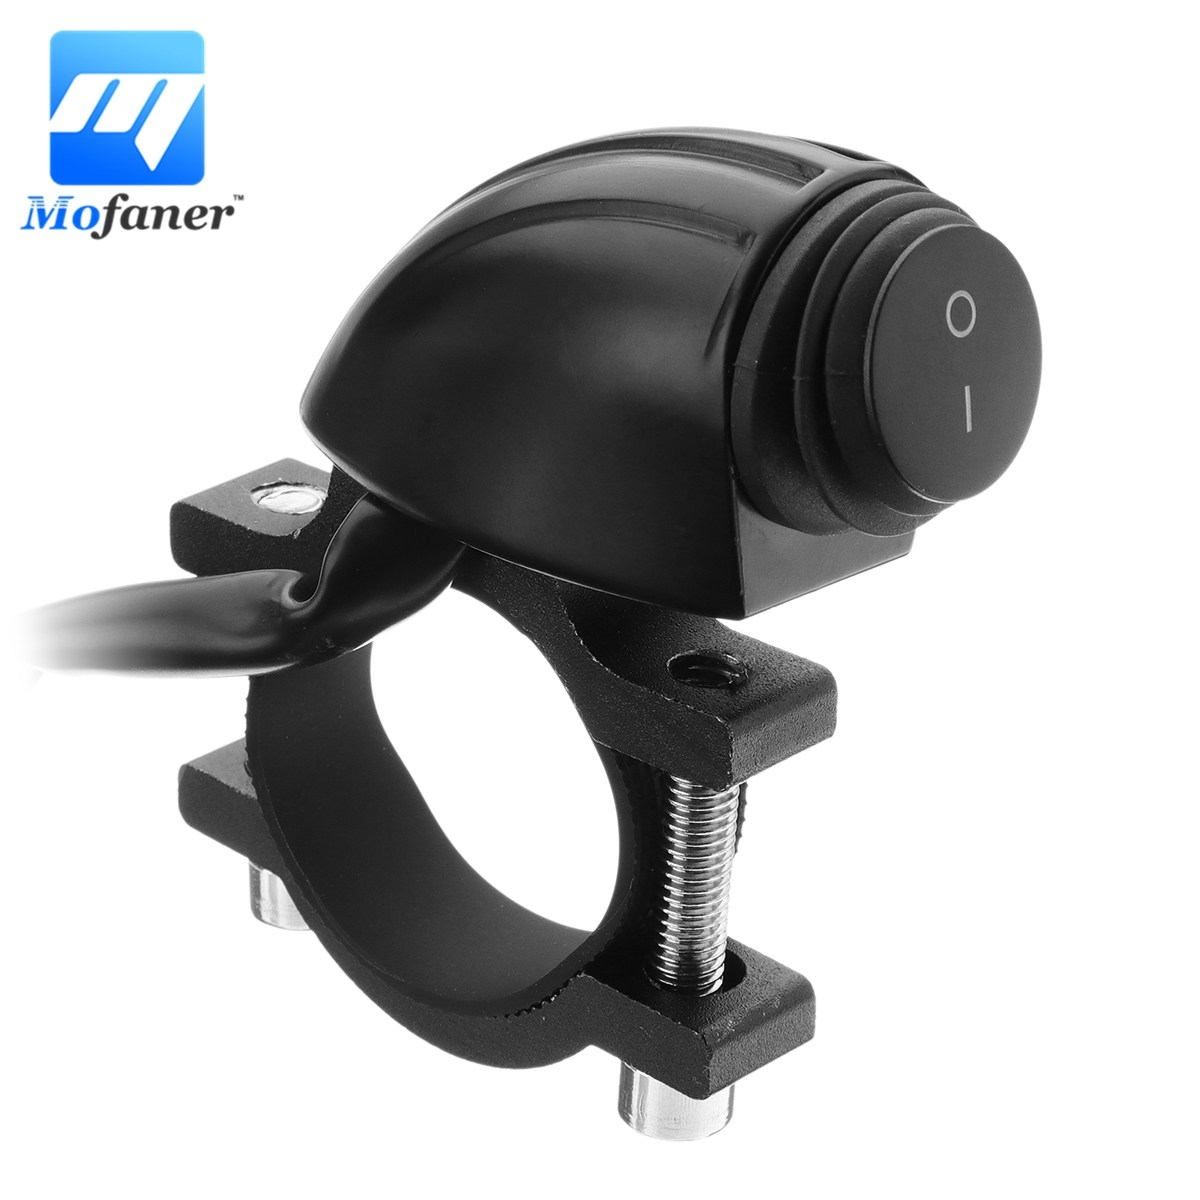 """1PC Waterproof 12V 22mm 7/8\"""" Motorcycle Switches Handlebar Mount Control <font><b>Headlight</b></font> ON OFF Switch For Motorbike ATV electric bike"""